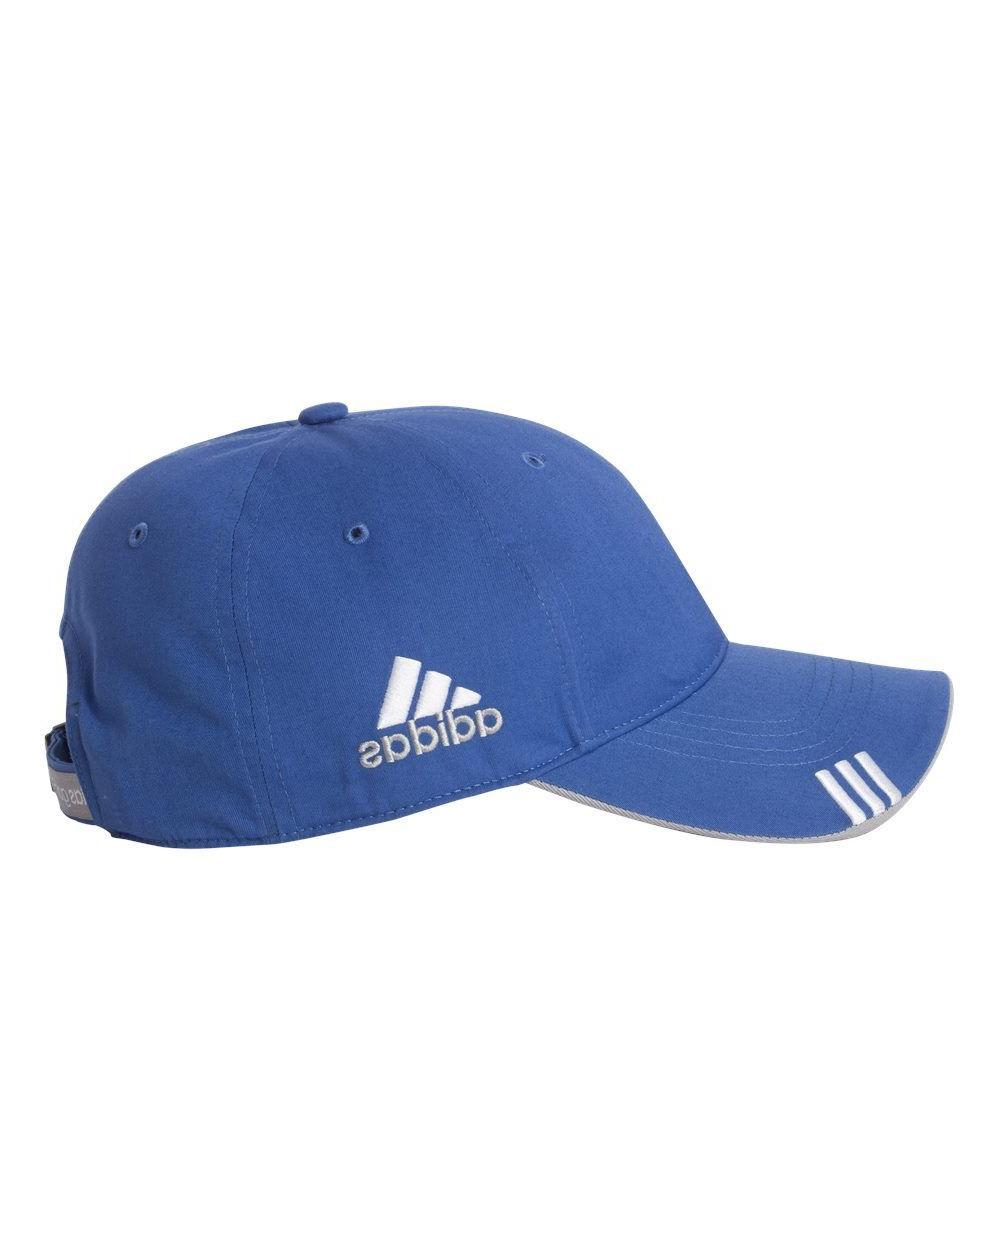 dd17d666 ADIDAS GOLF Men's Adjustable Baseball Cap Unstructured Structure